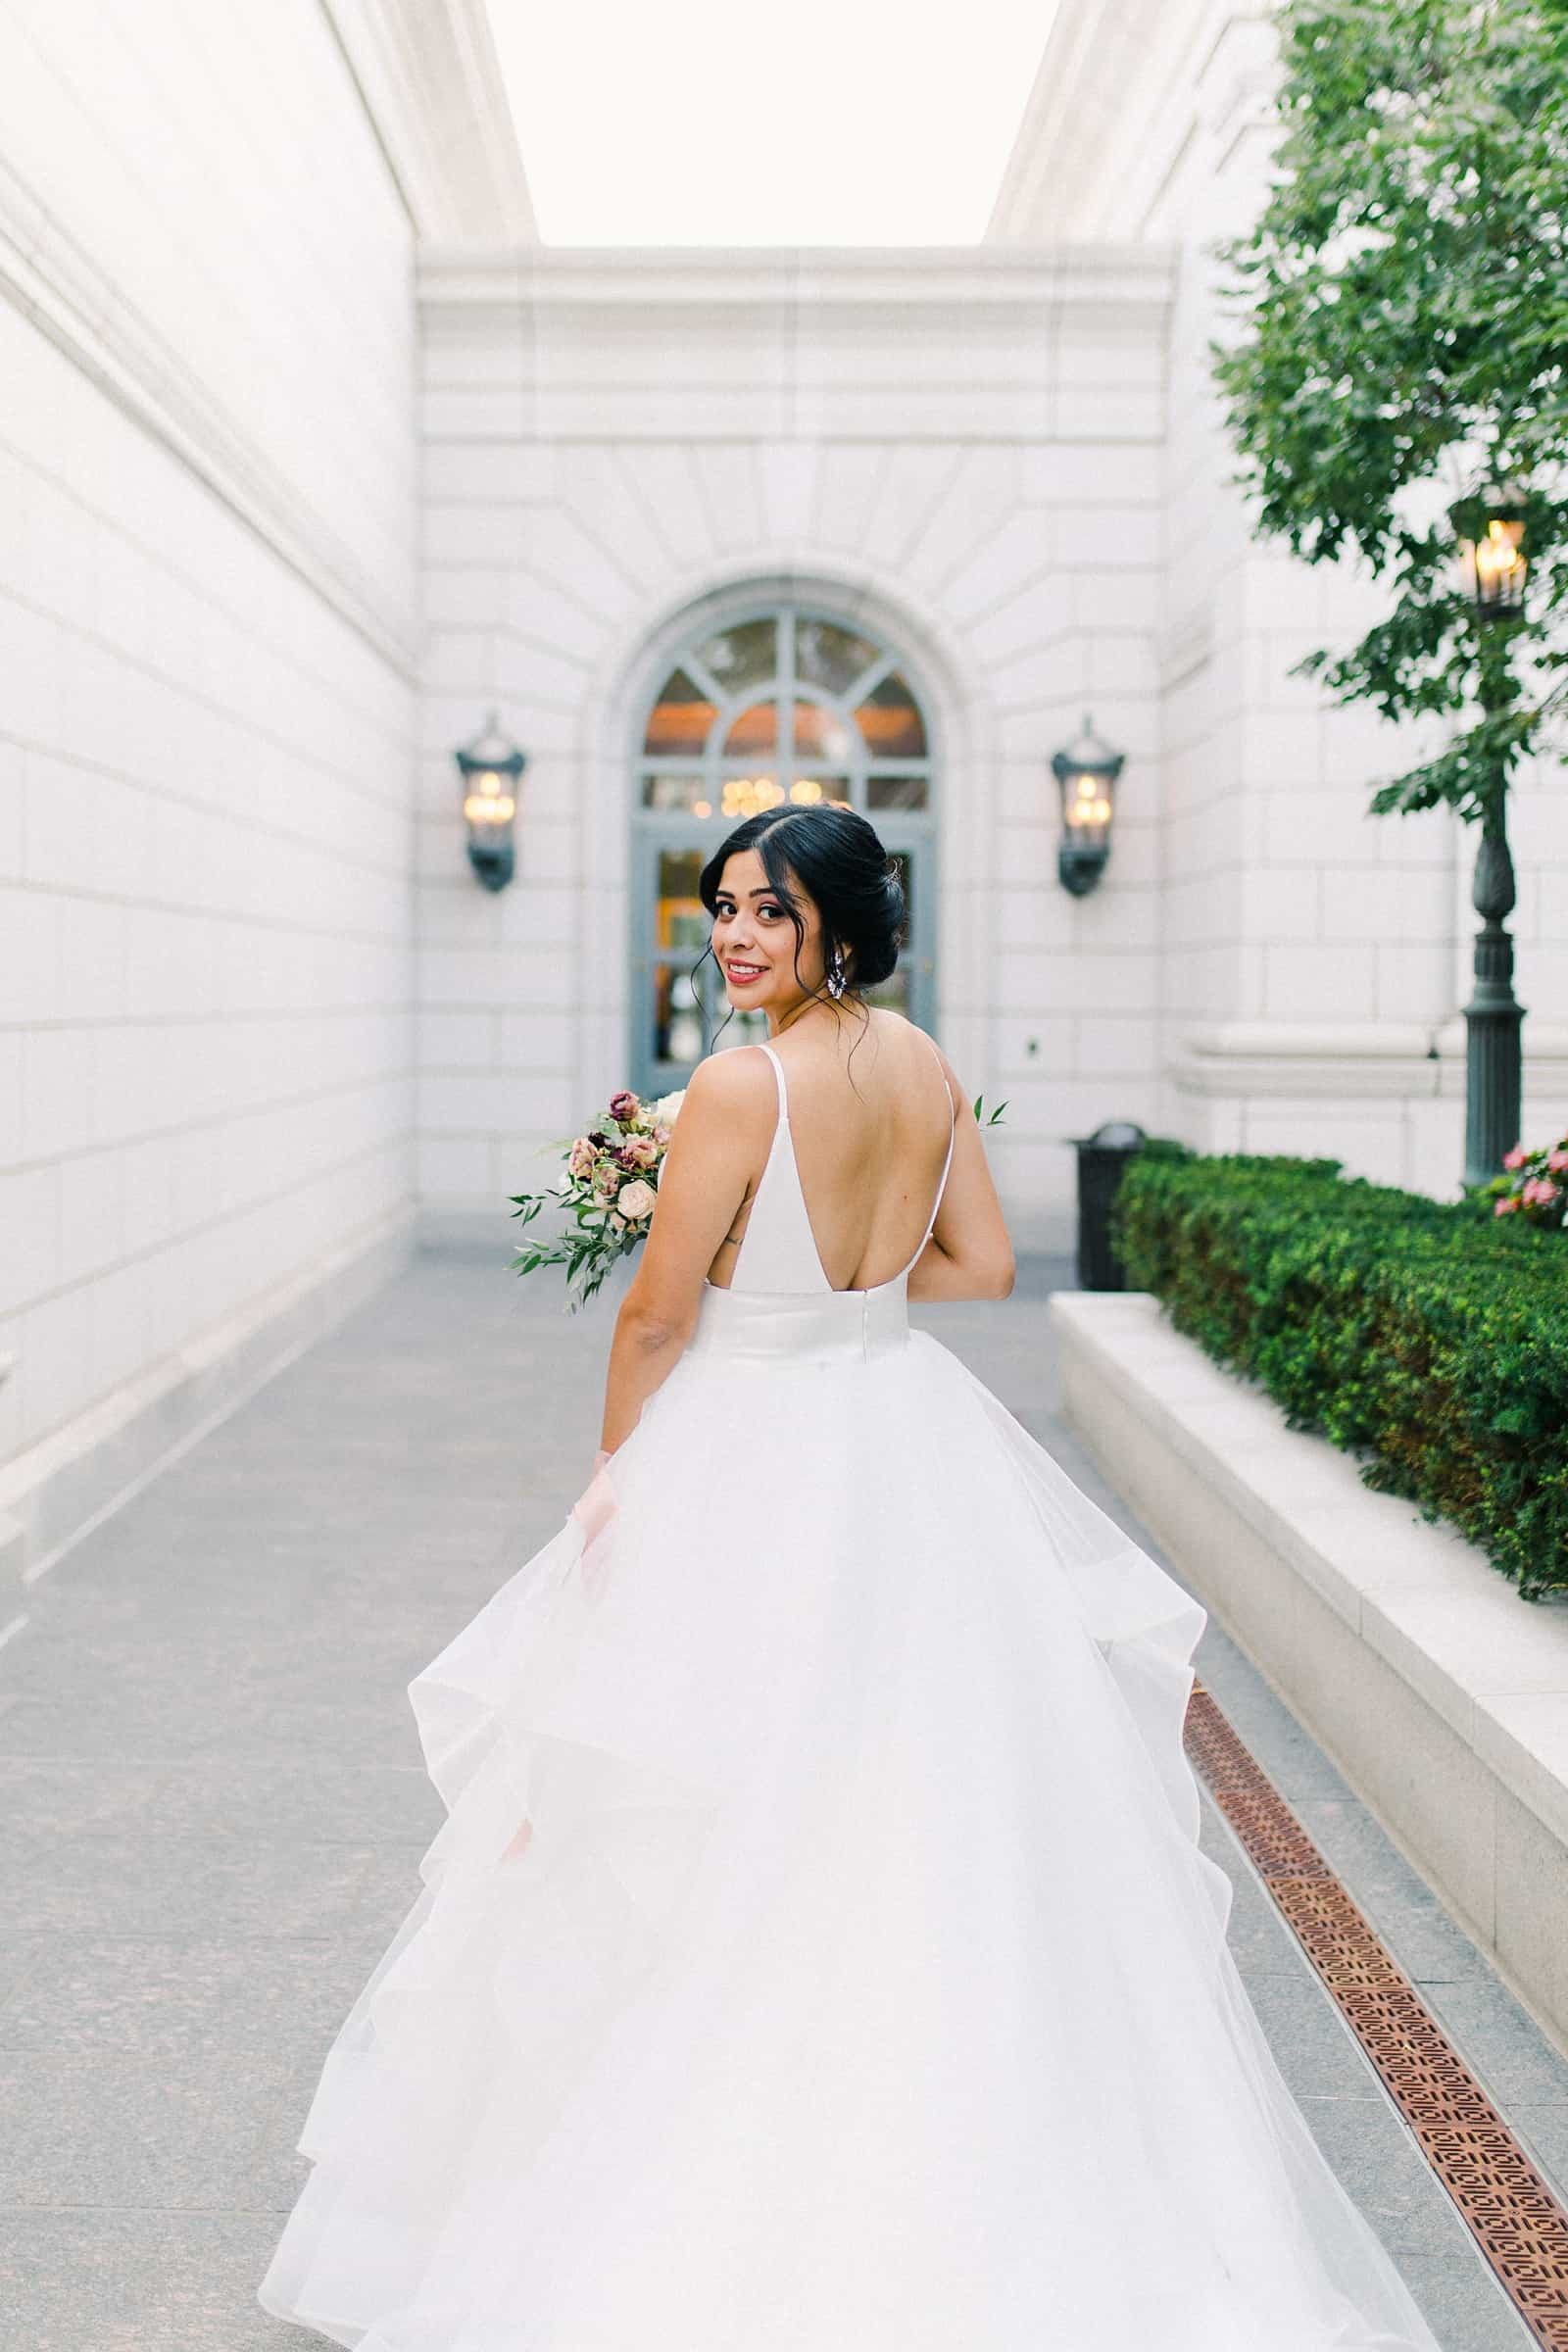 Bride with long train and low back dress in the courtyard of the Grand America Hotel in Salt Lake City, Utah